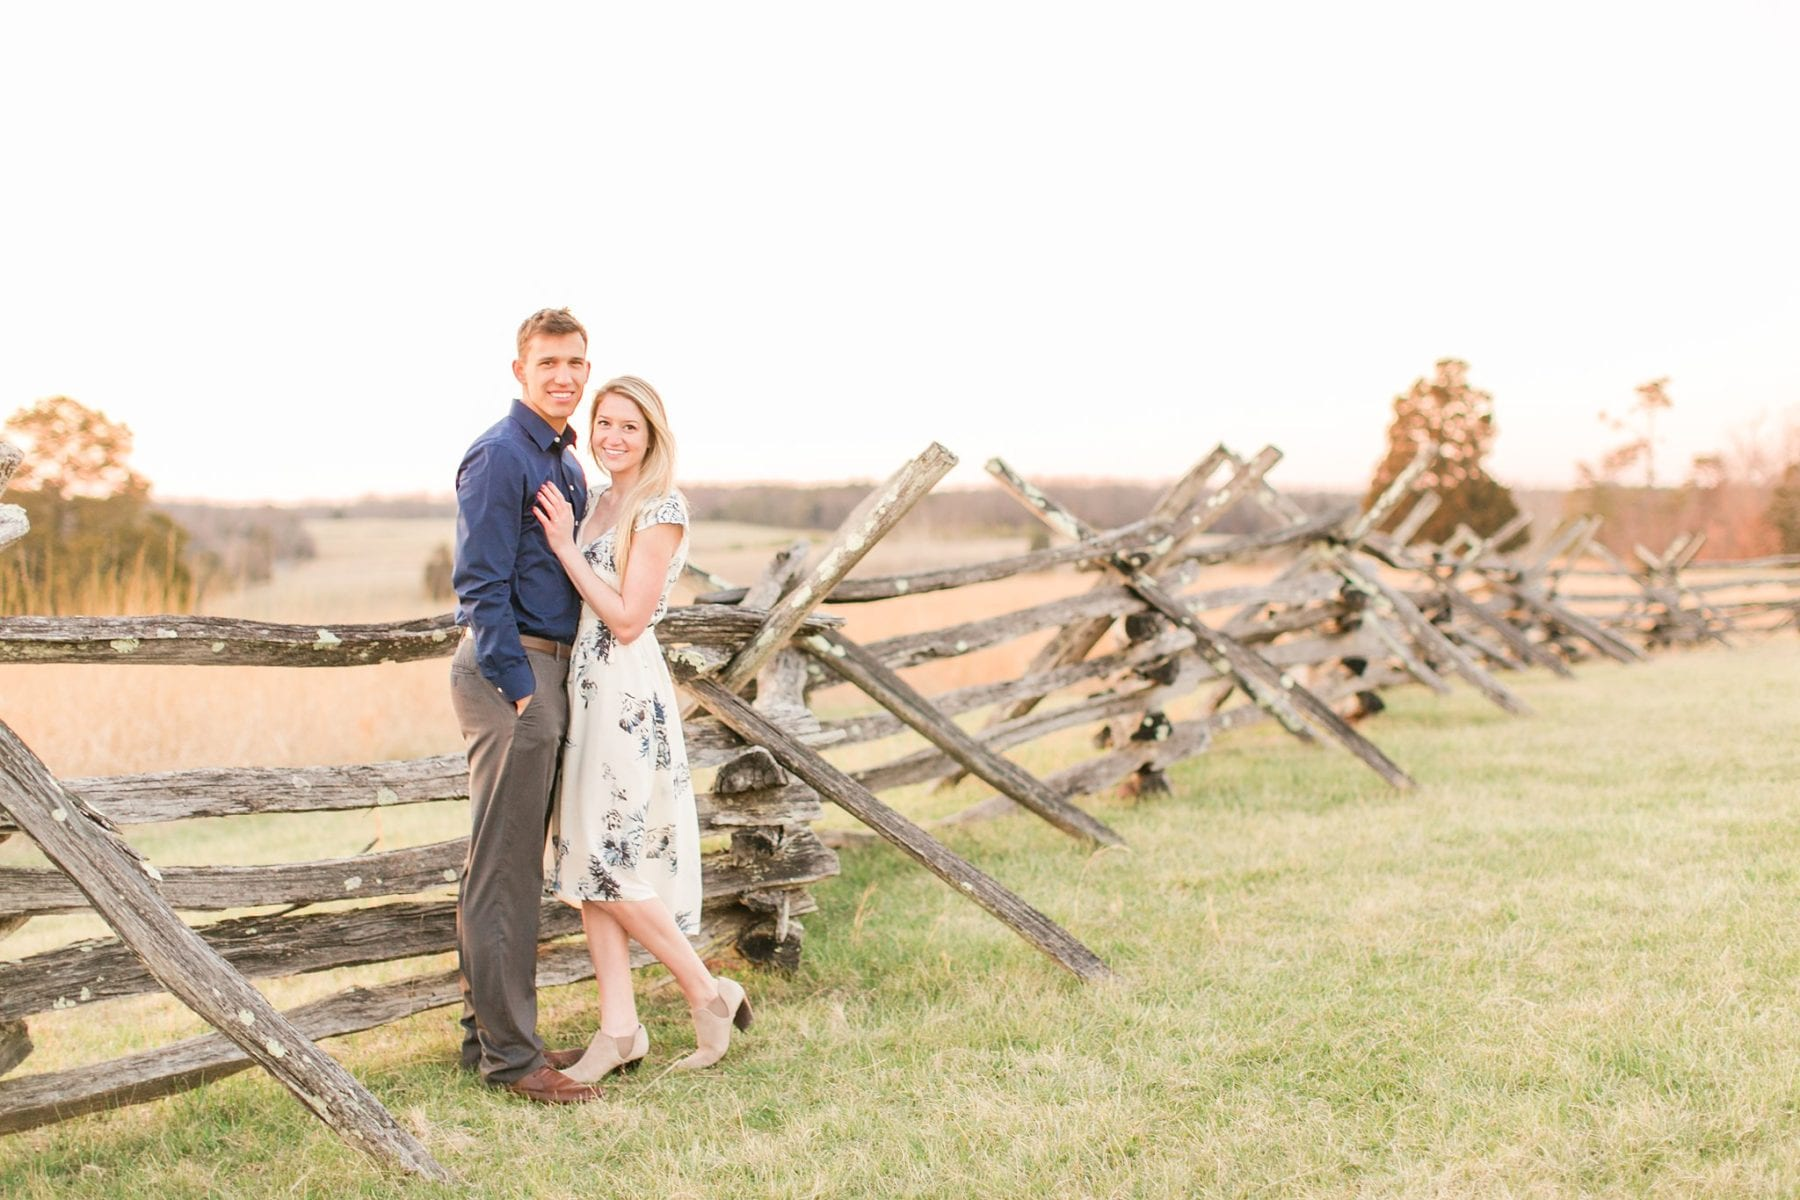 Manassas Battlefield Engagement Session Virginia Wedding Photographer Danielle & Charlie Megan Kelsey Photography-6329.jpg